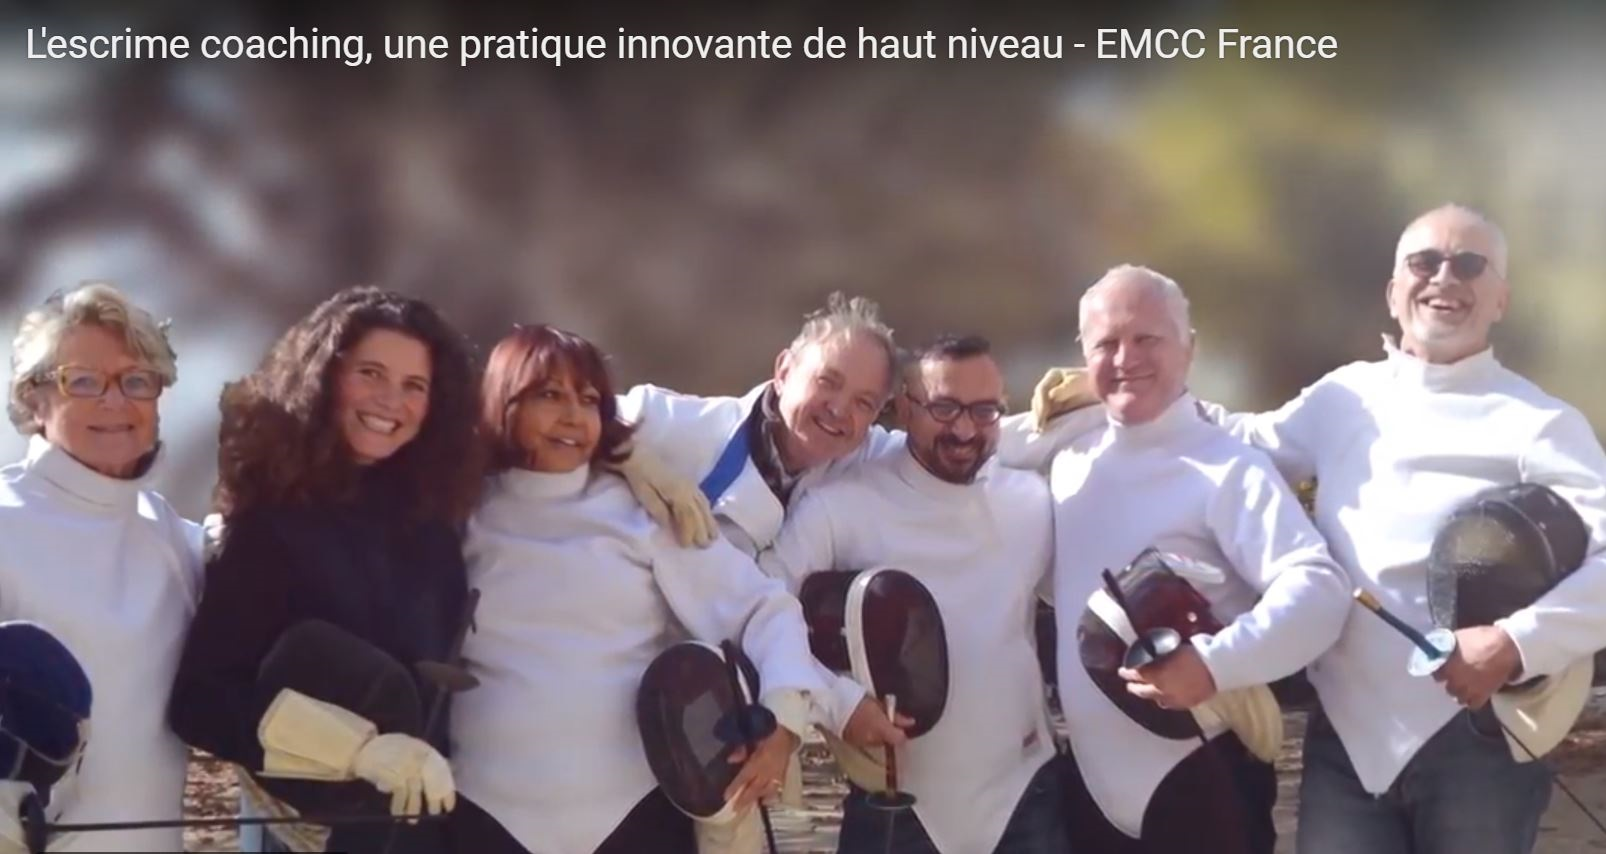 L'EMCC France à l'escrime-coaching